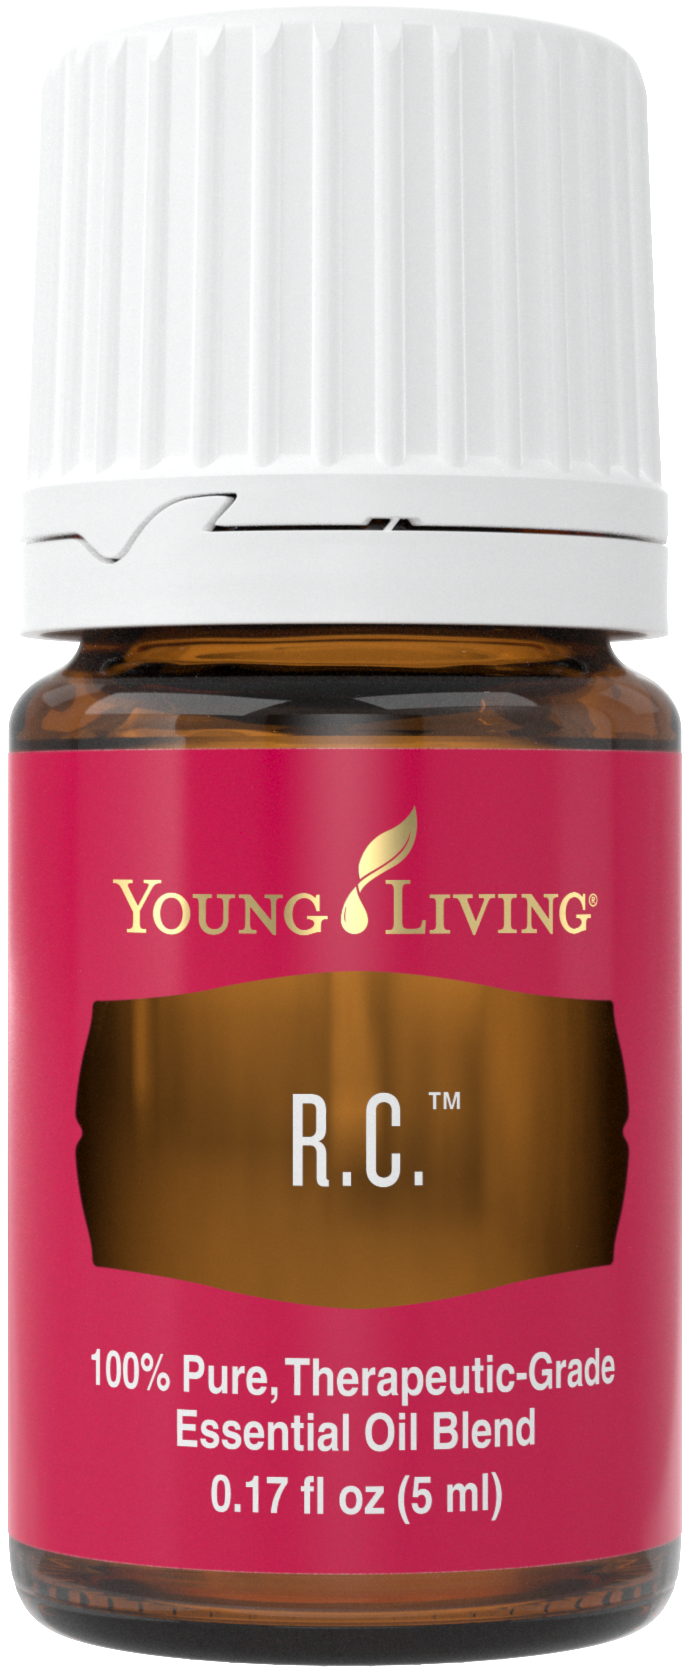 R.C. Essential Oil by Young Living